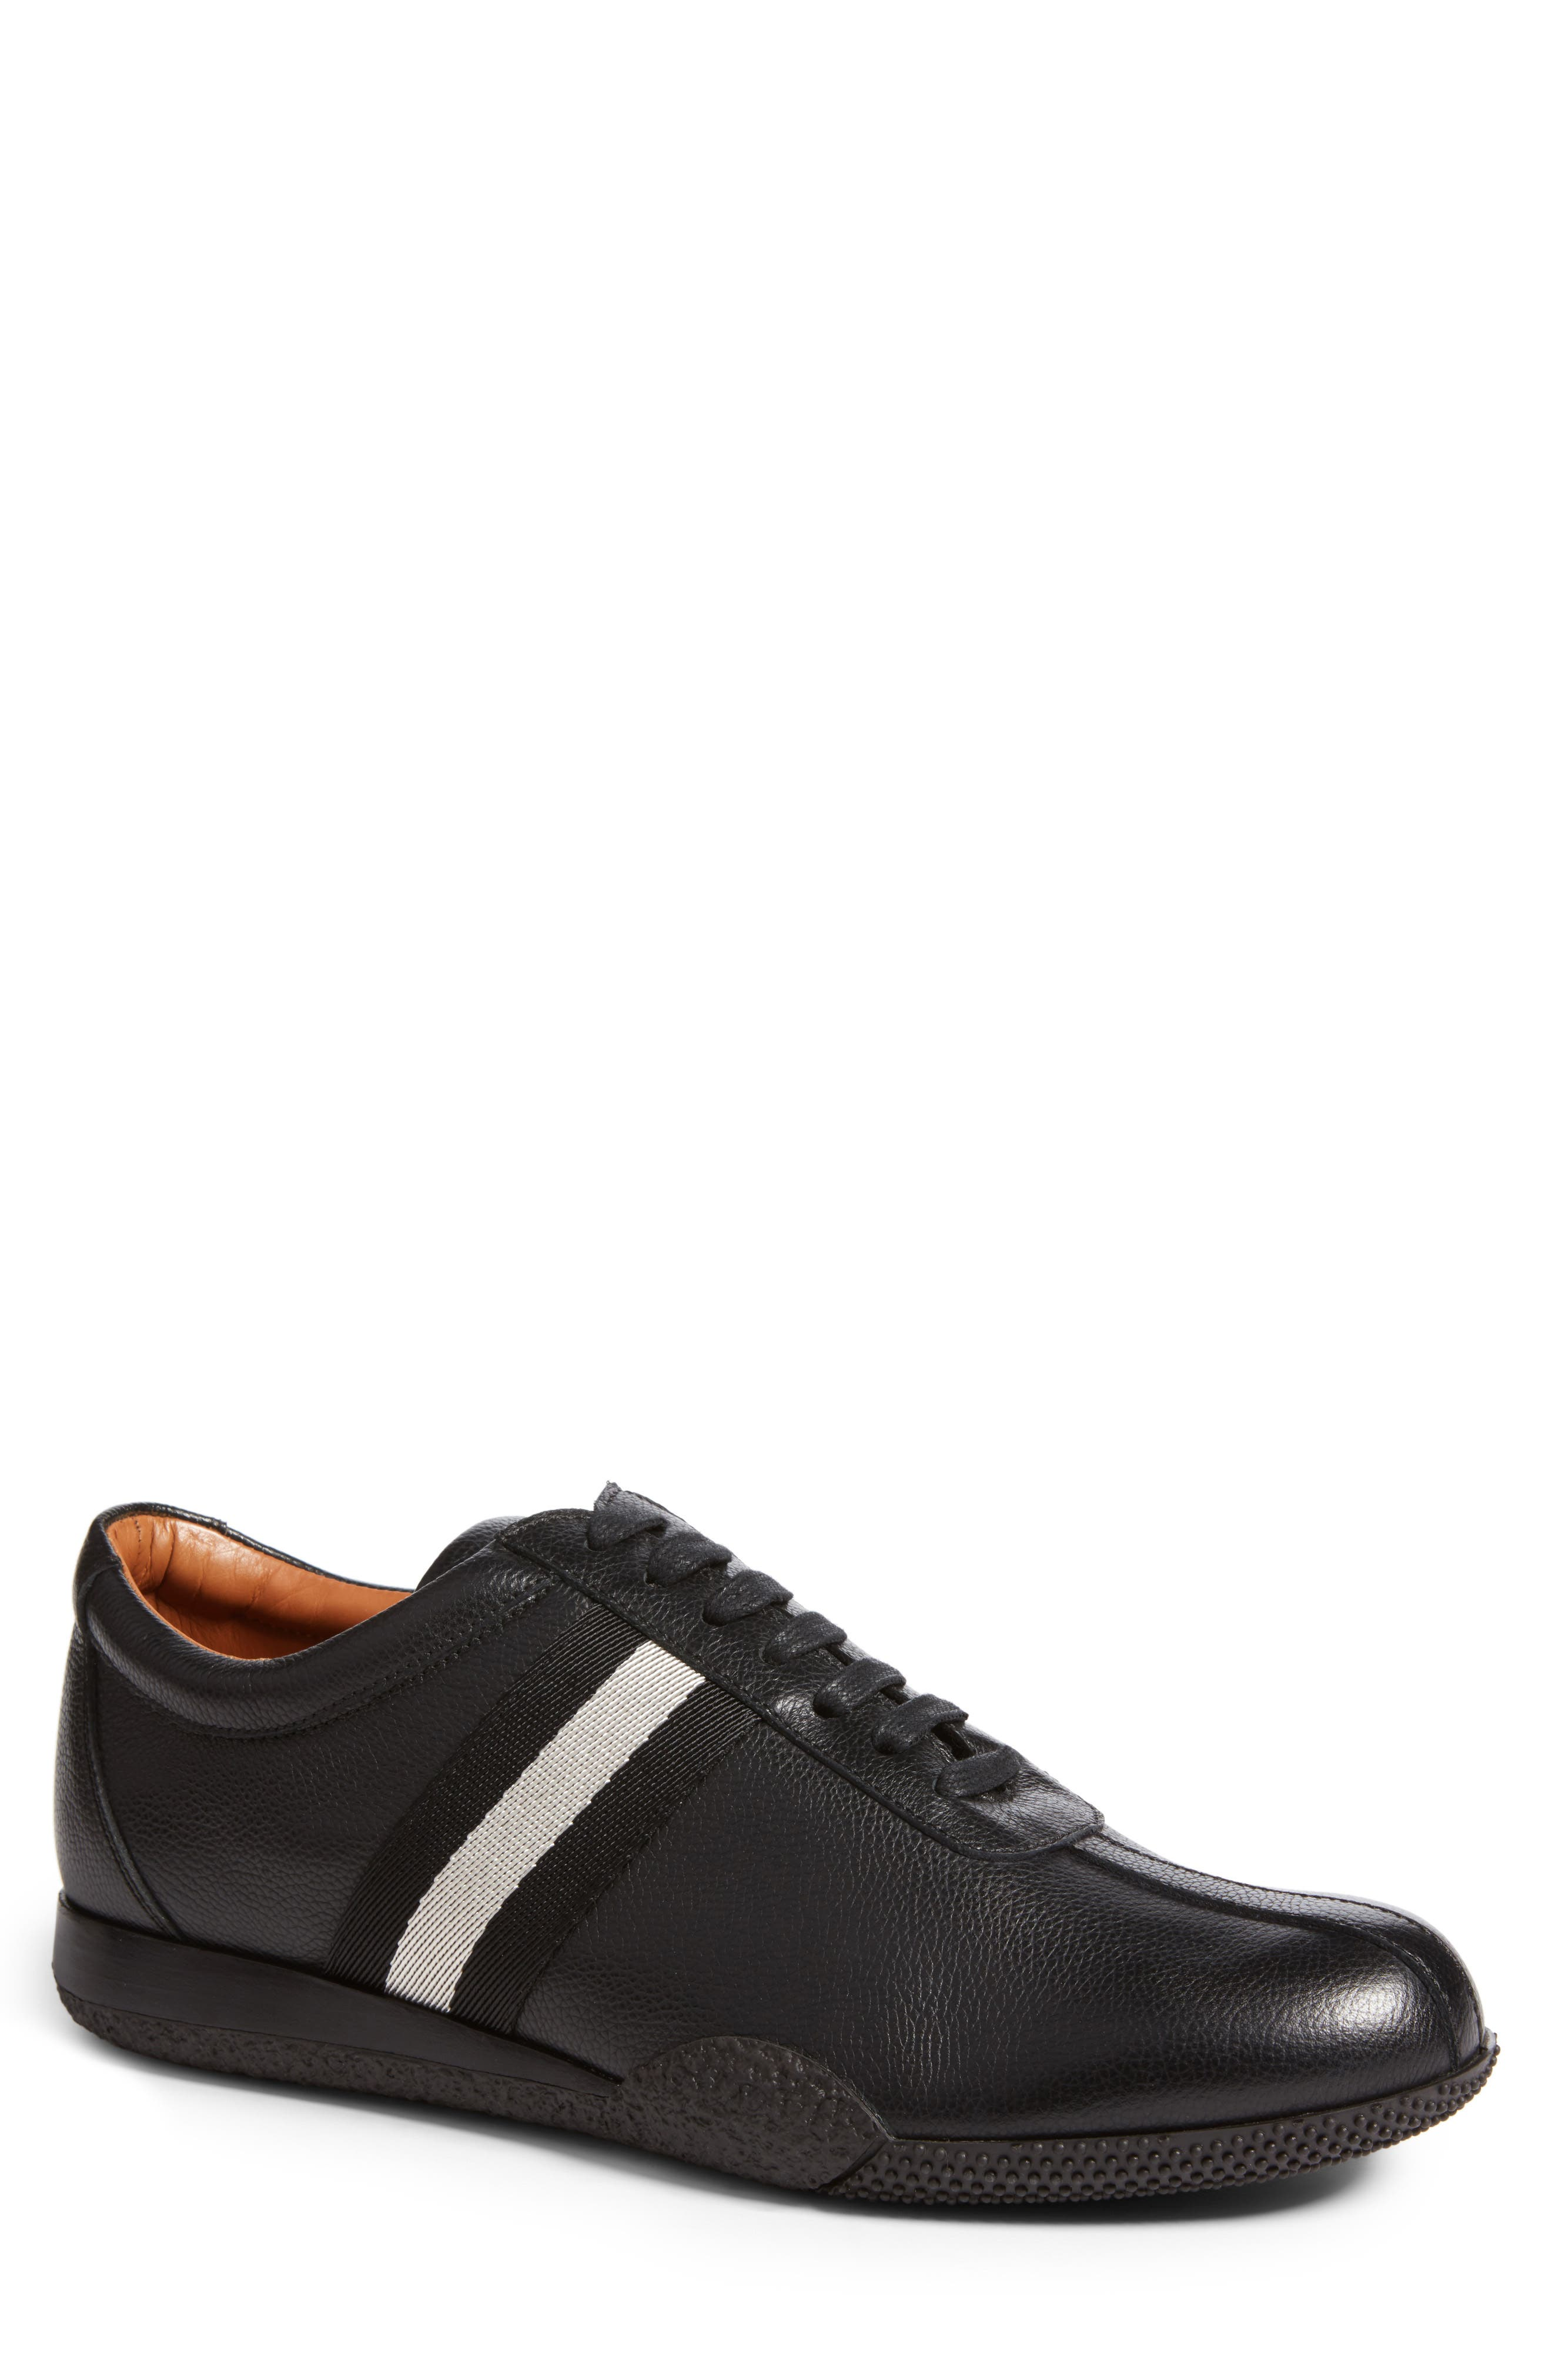 BALLY Frenz Perforated Sneaker